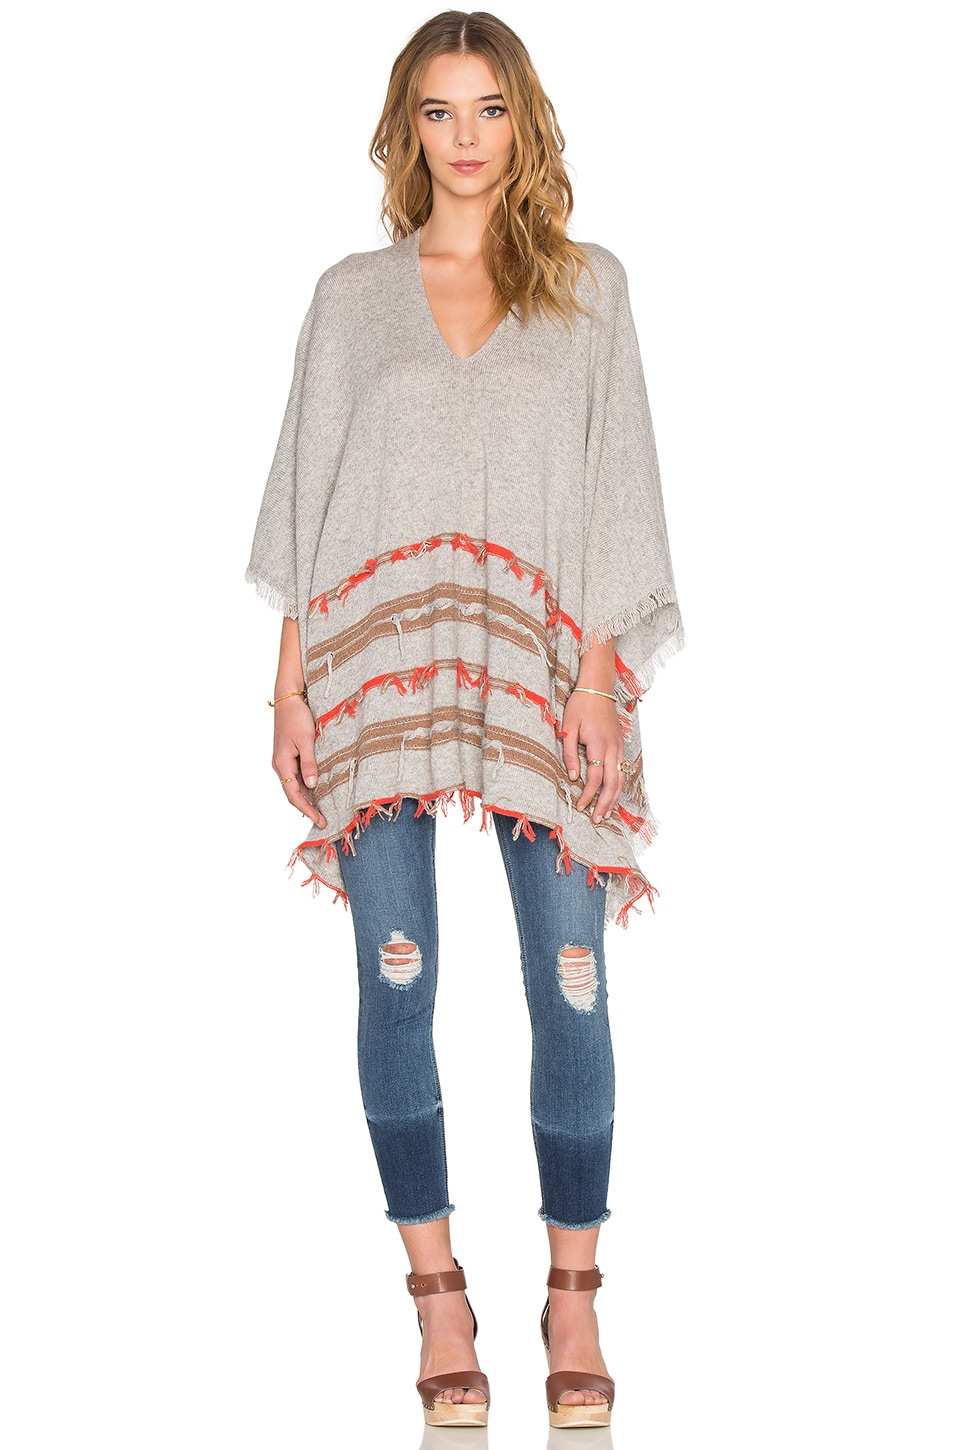 Ella Moss Ravenna Poncho in Heather Grey Multi